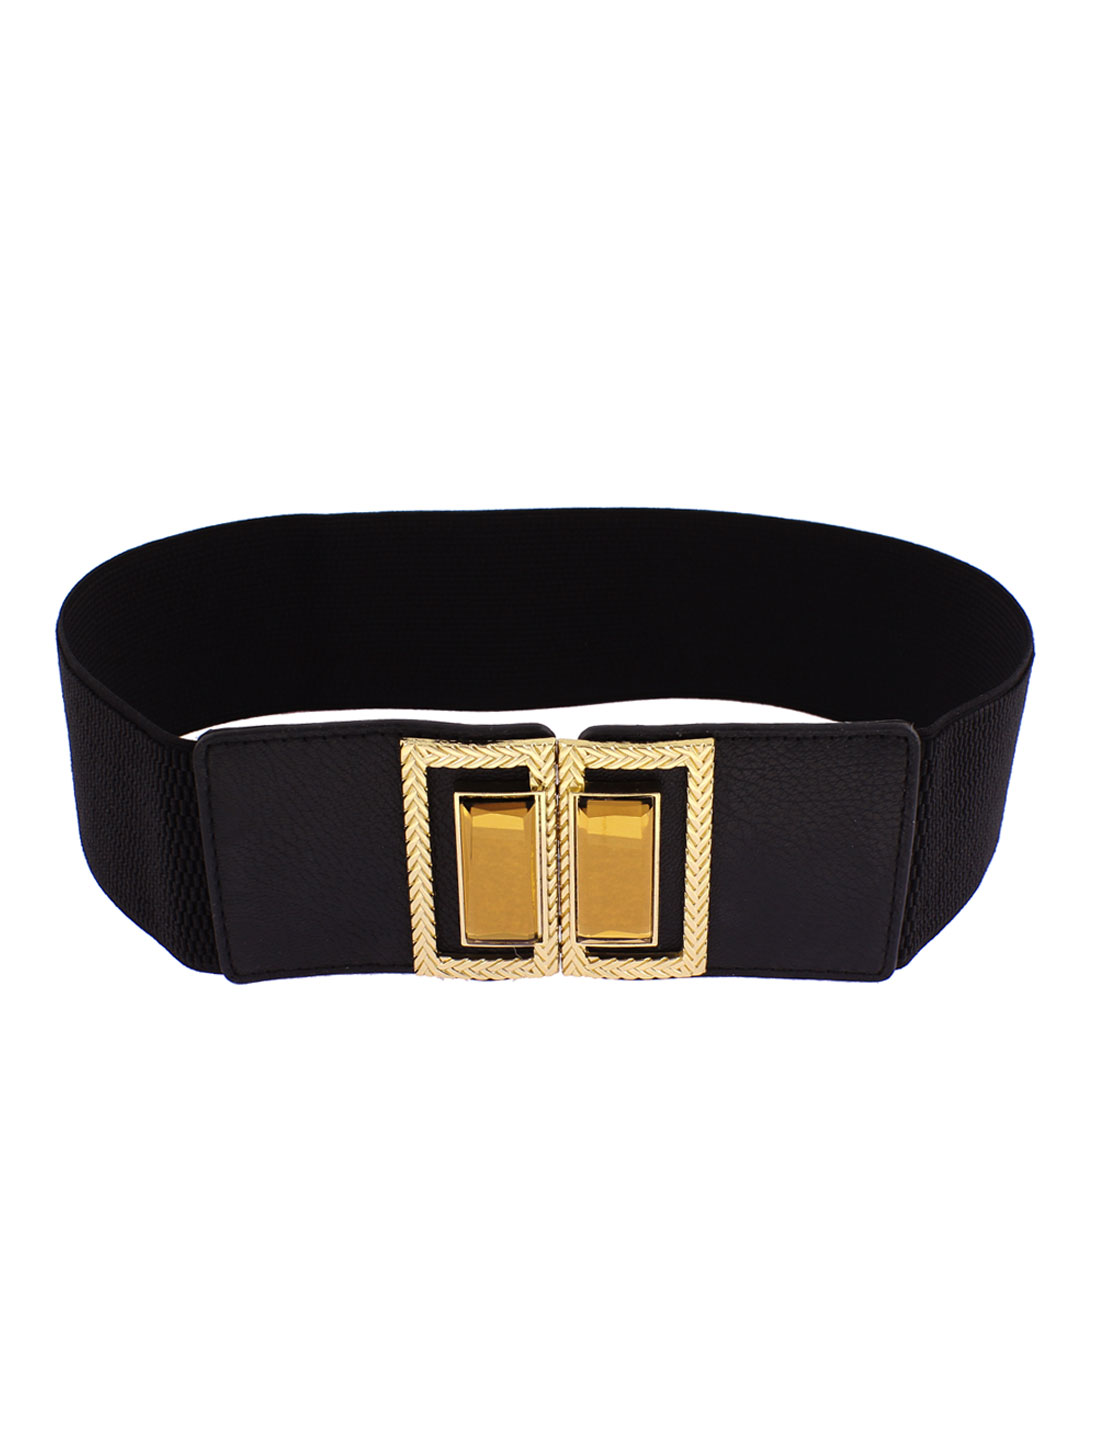 Gold Tone Buckle Adjustable Elastic Wide Waistband Waist Belt 65cm Long